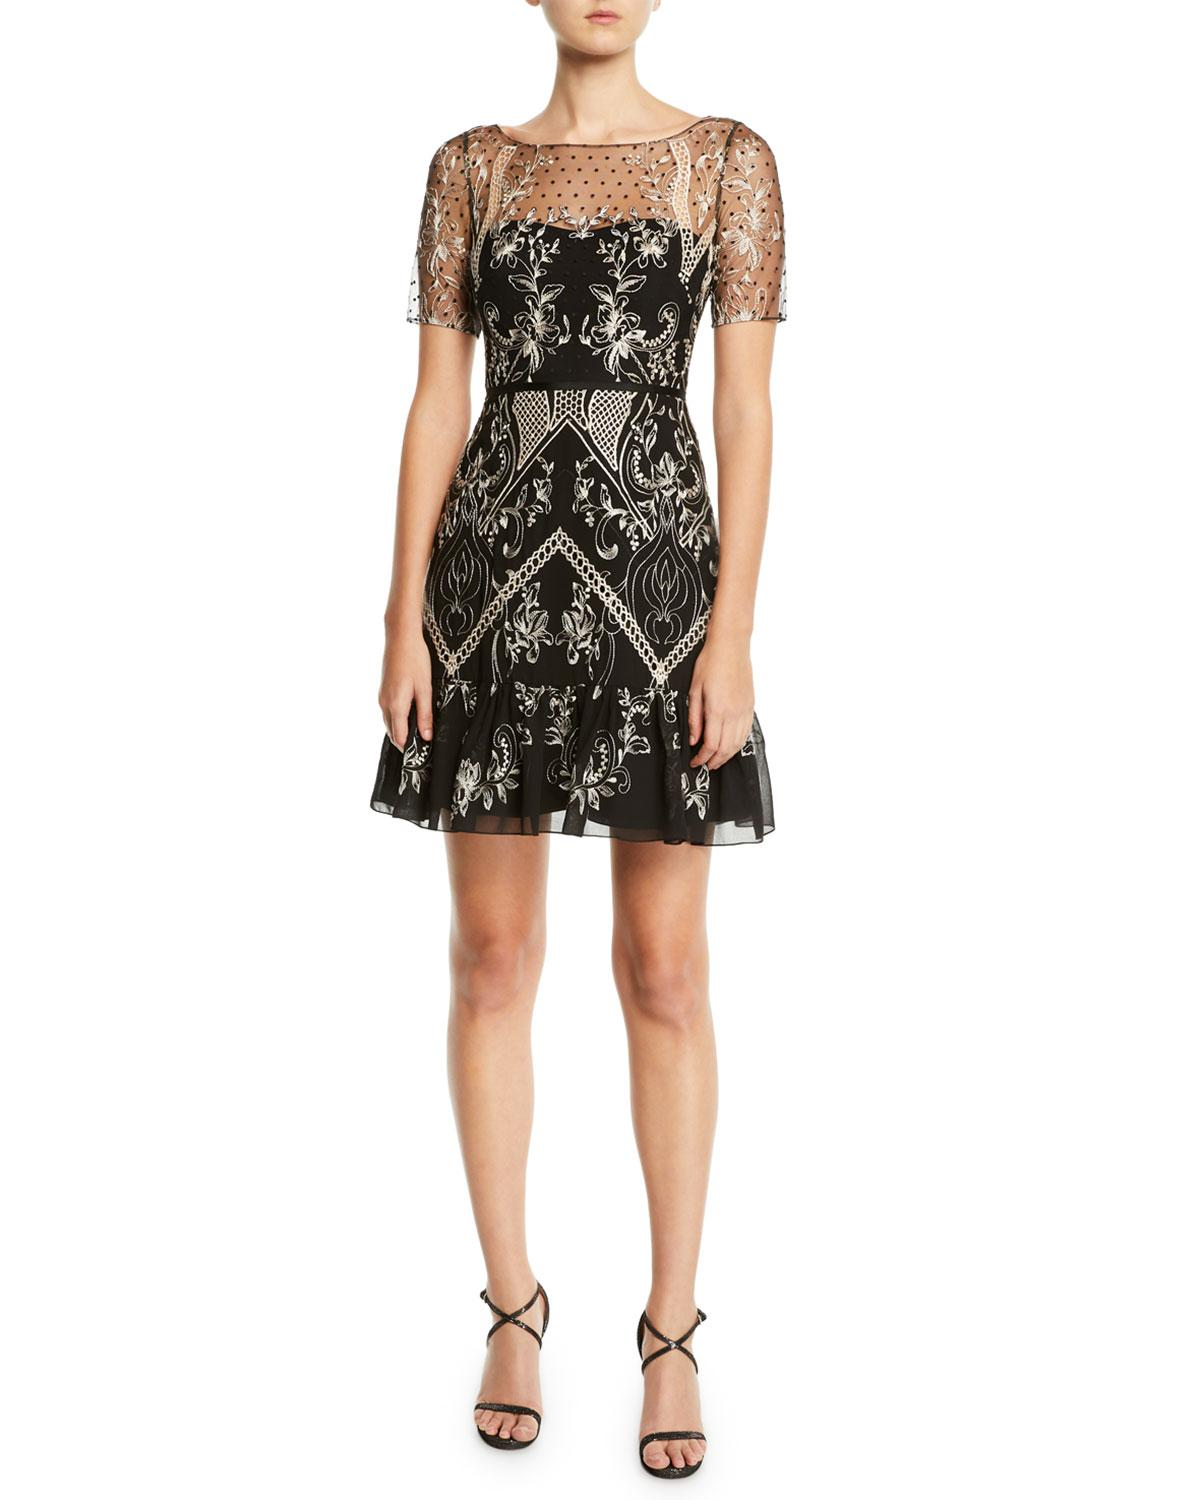 57bdc7deabd Marchesa notte. Women s Black Short-sleeve Dotted Chiffon Cocktail Dress